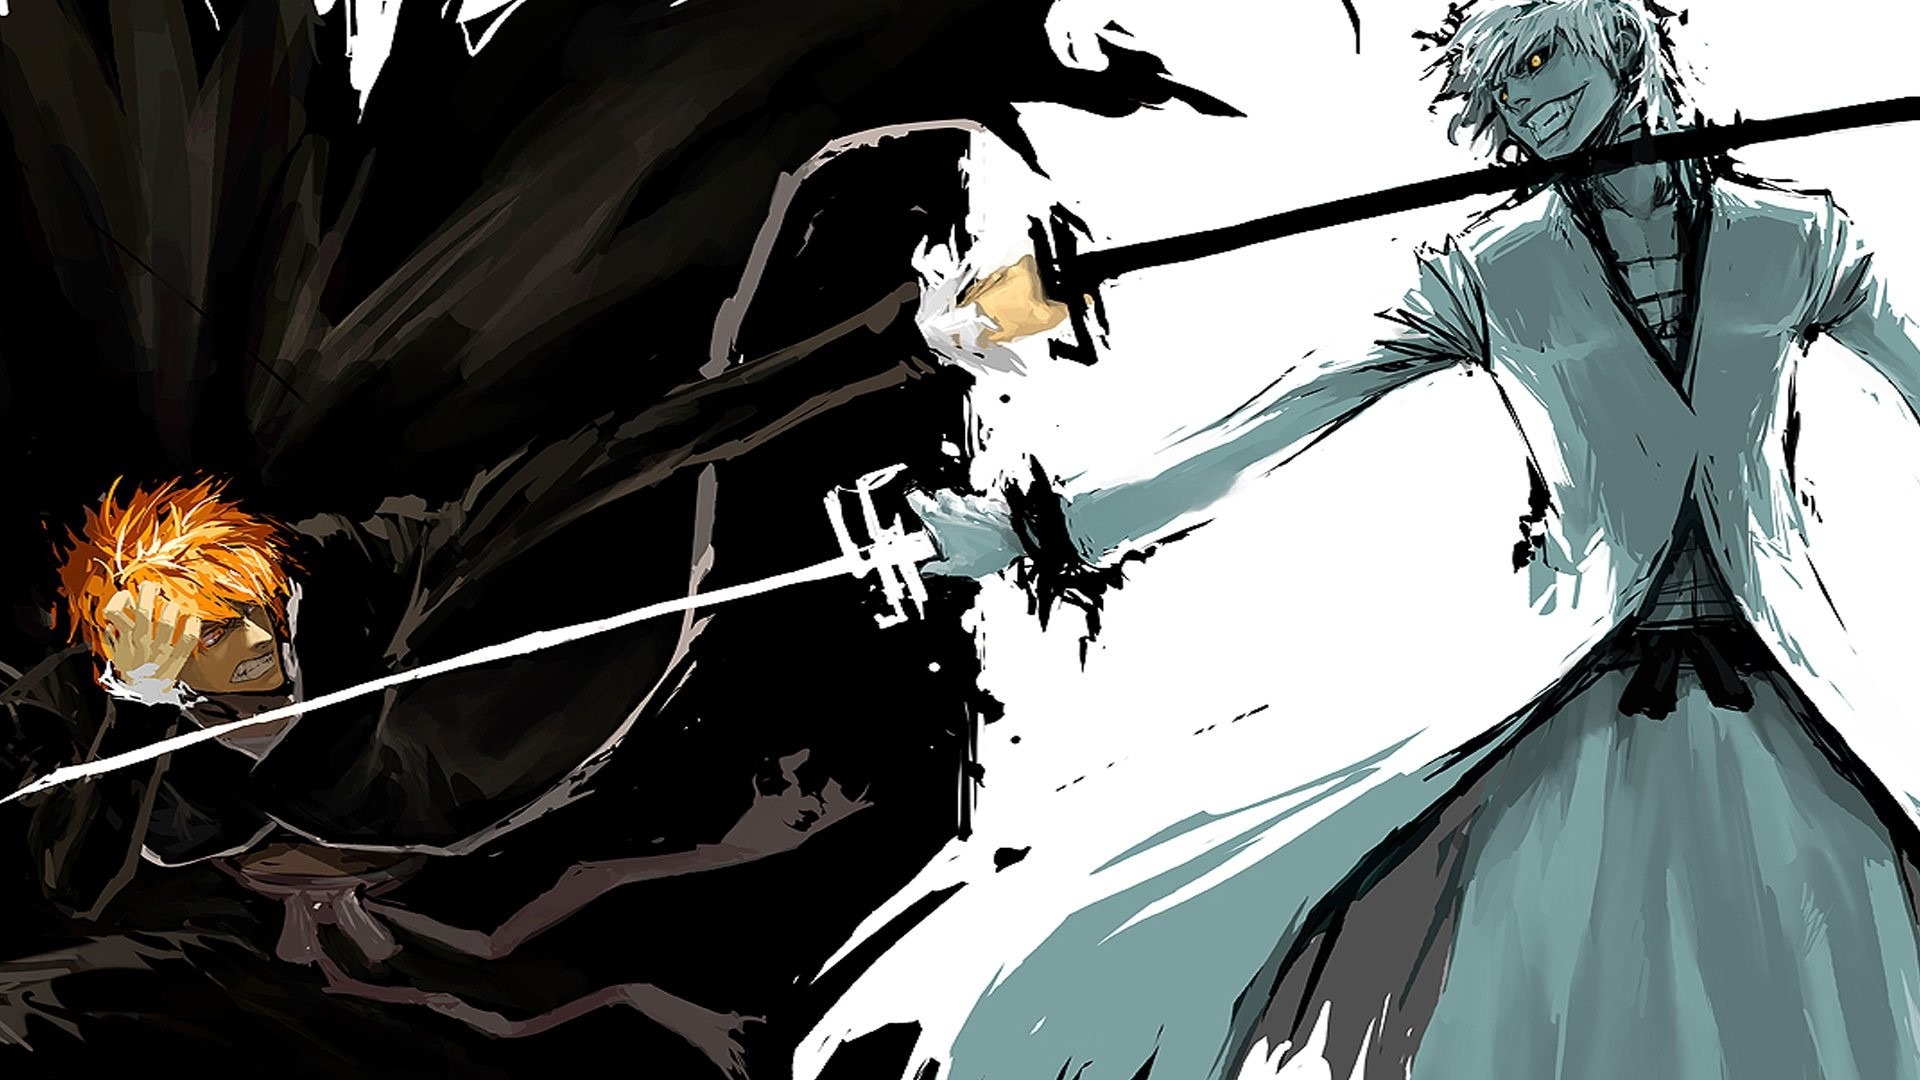 bleach wallpaper 1920 x 1080 - photo #9